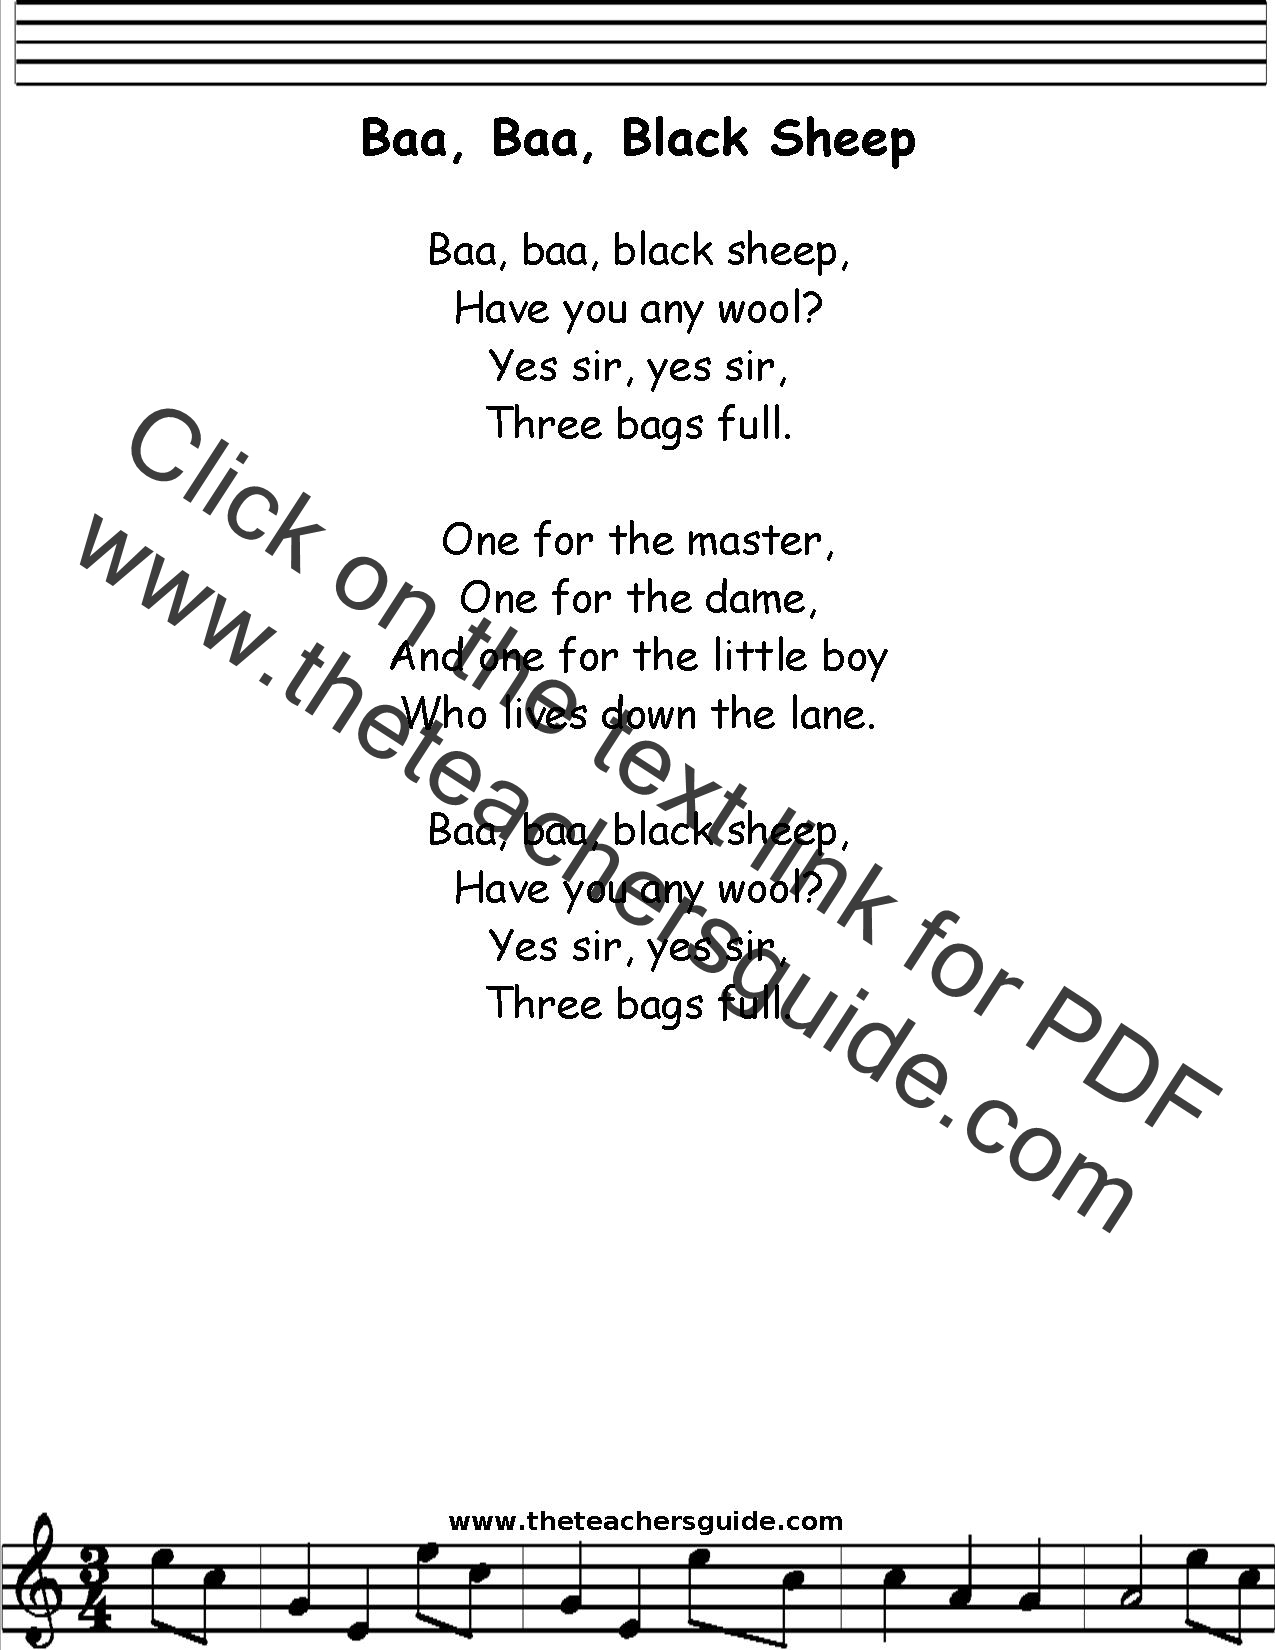 Baa Baa Black Sheep Lyrics Printout Midi And Video